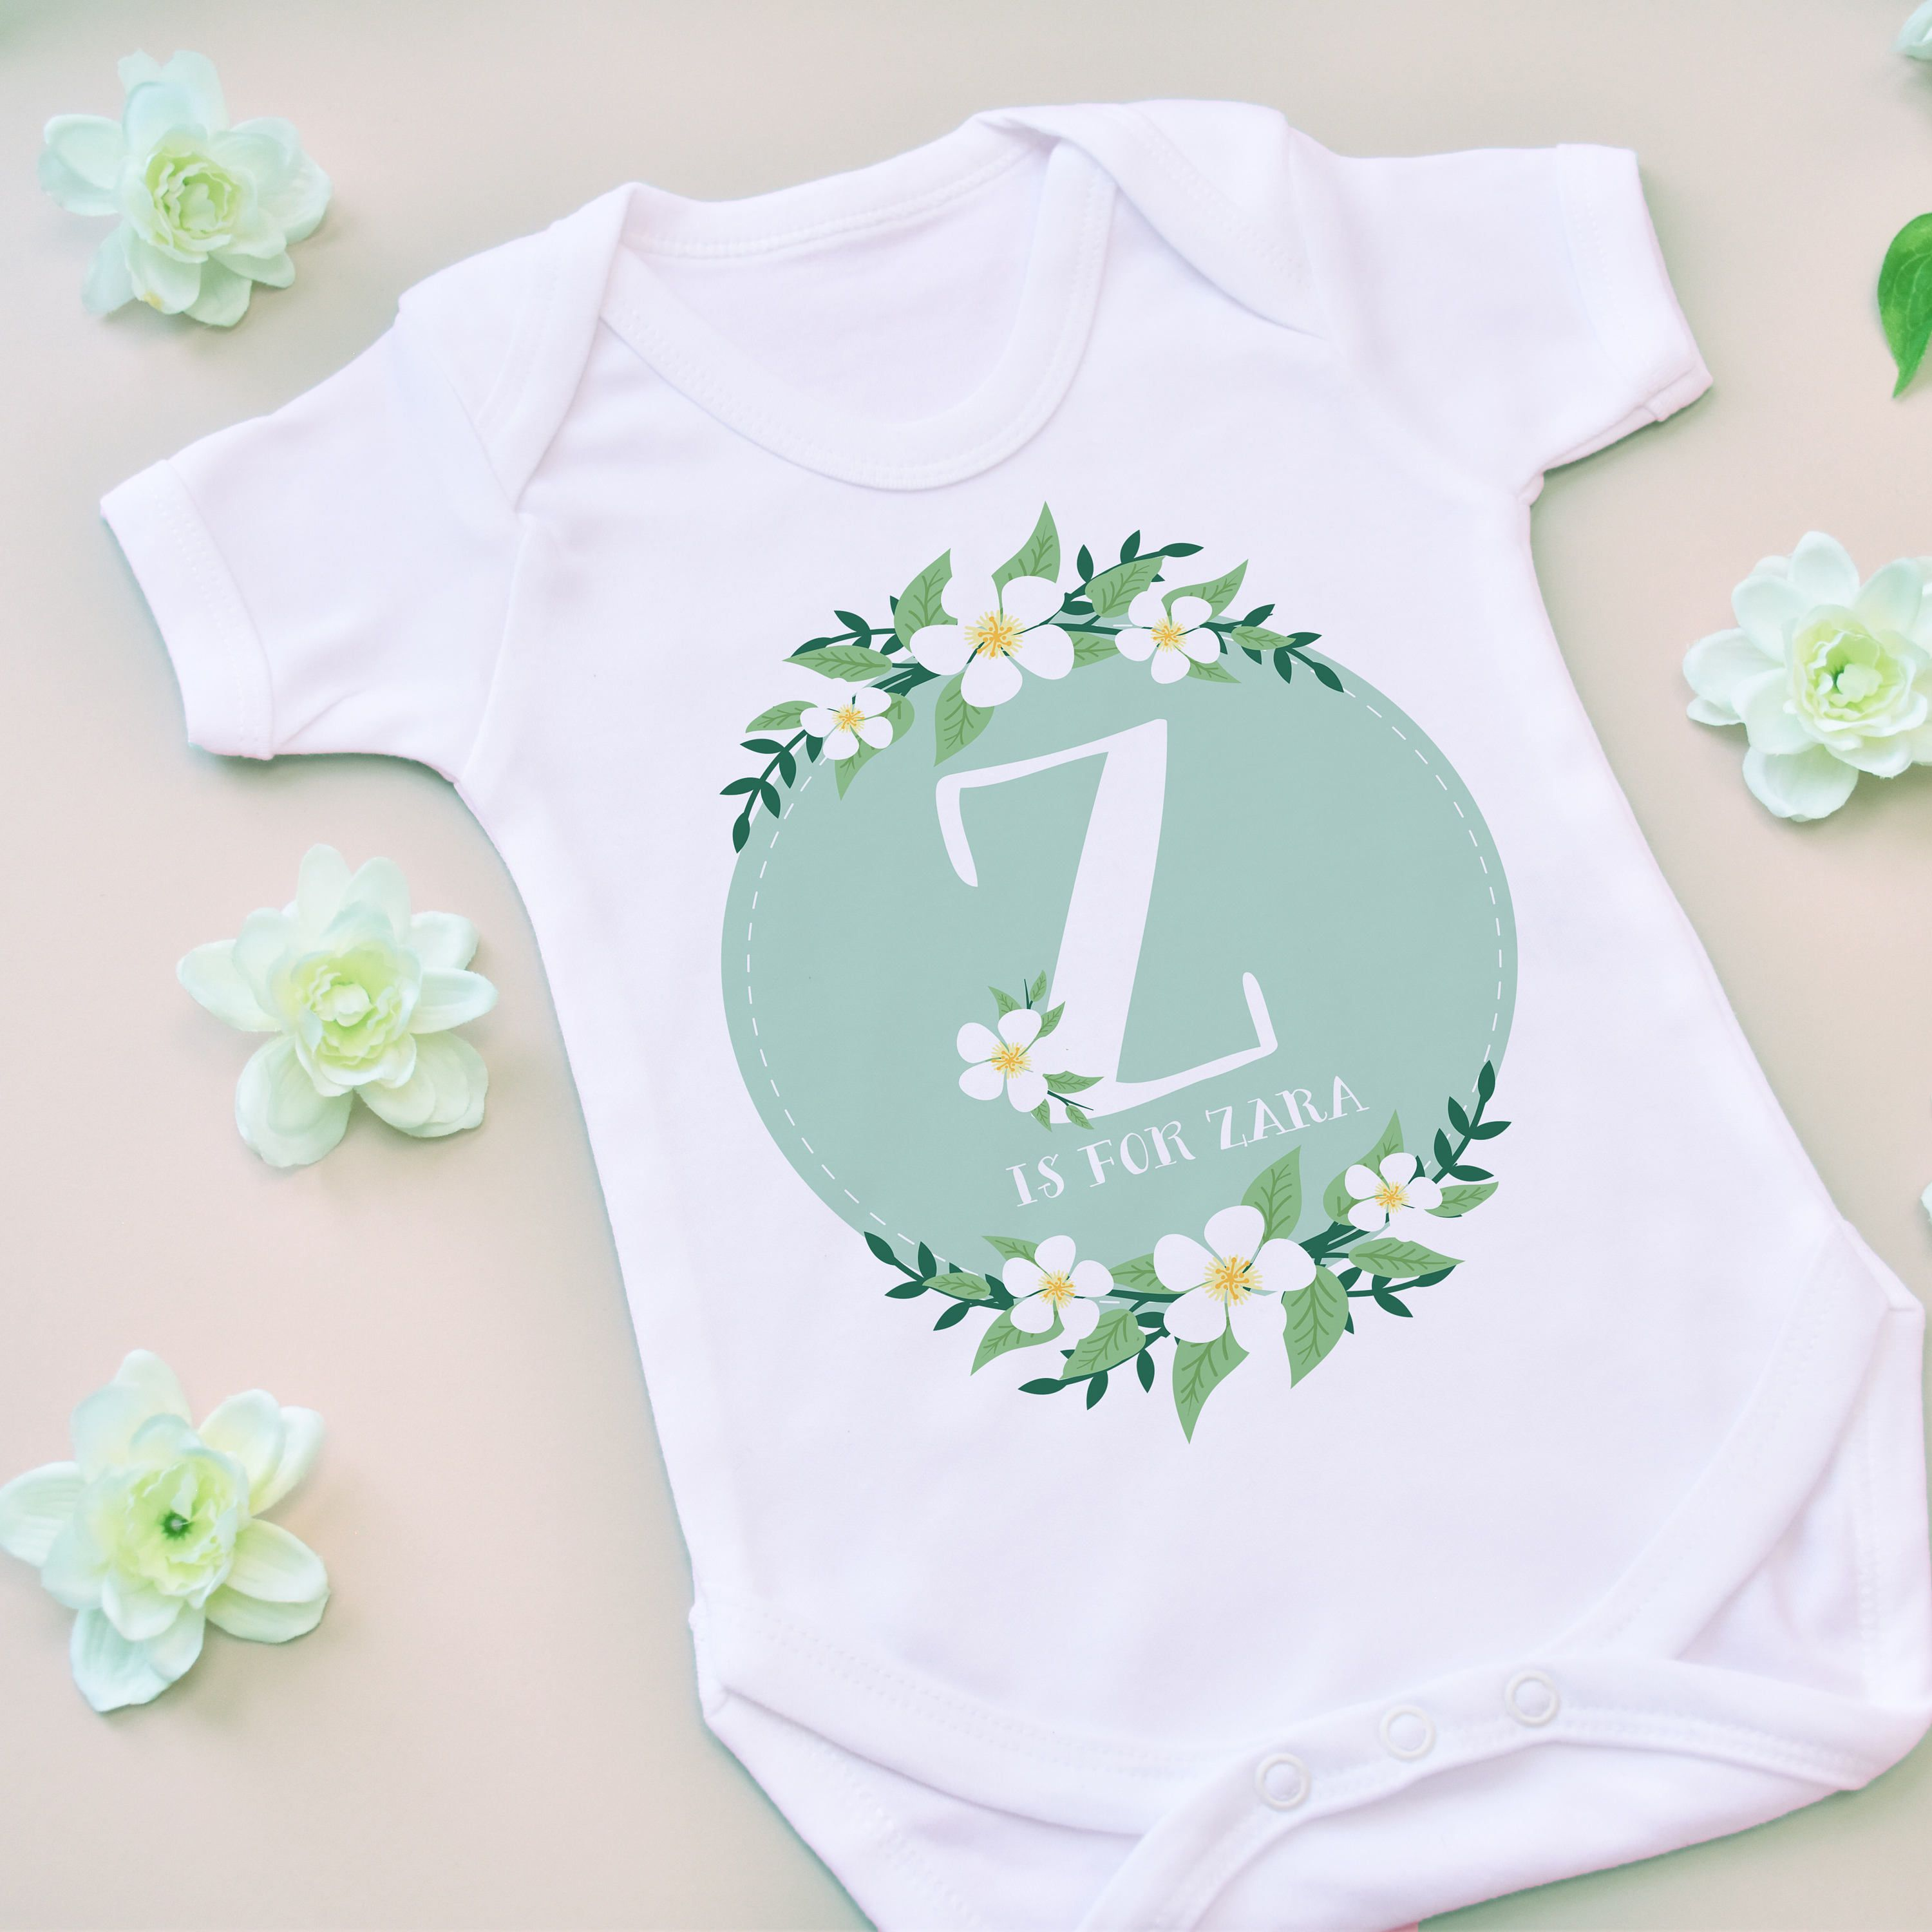 Personalised Baby Name with Cute Baby Items Design Blue Baby Vest